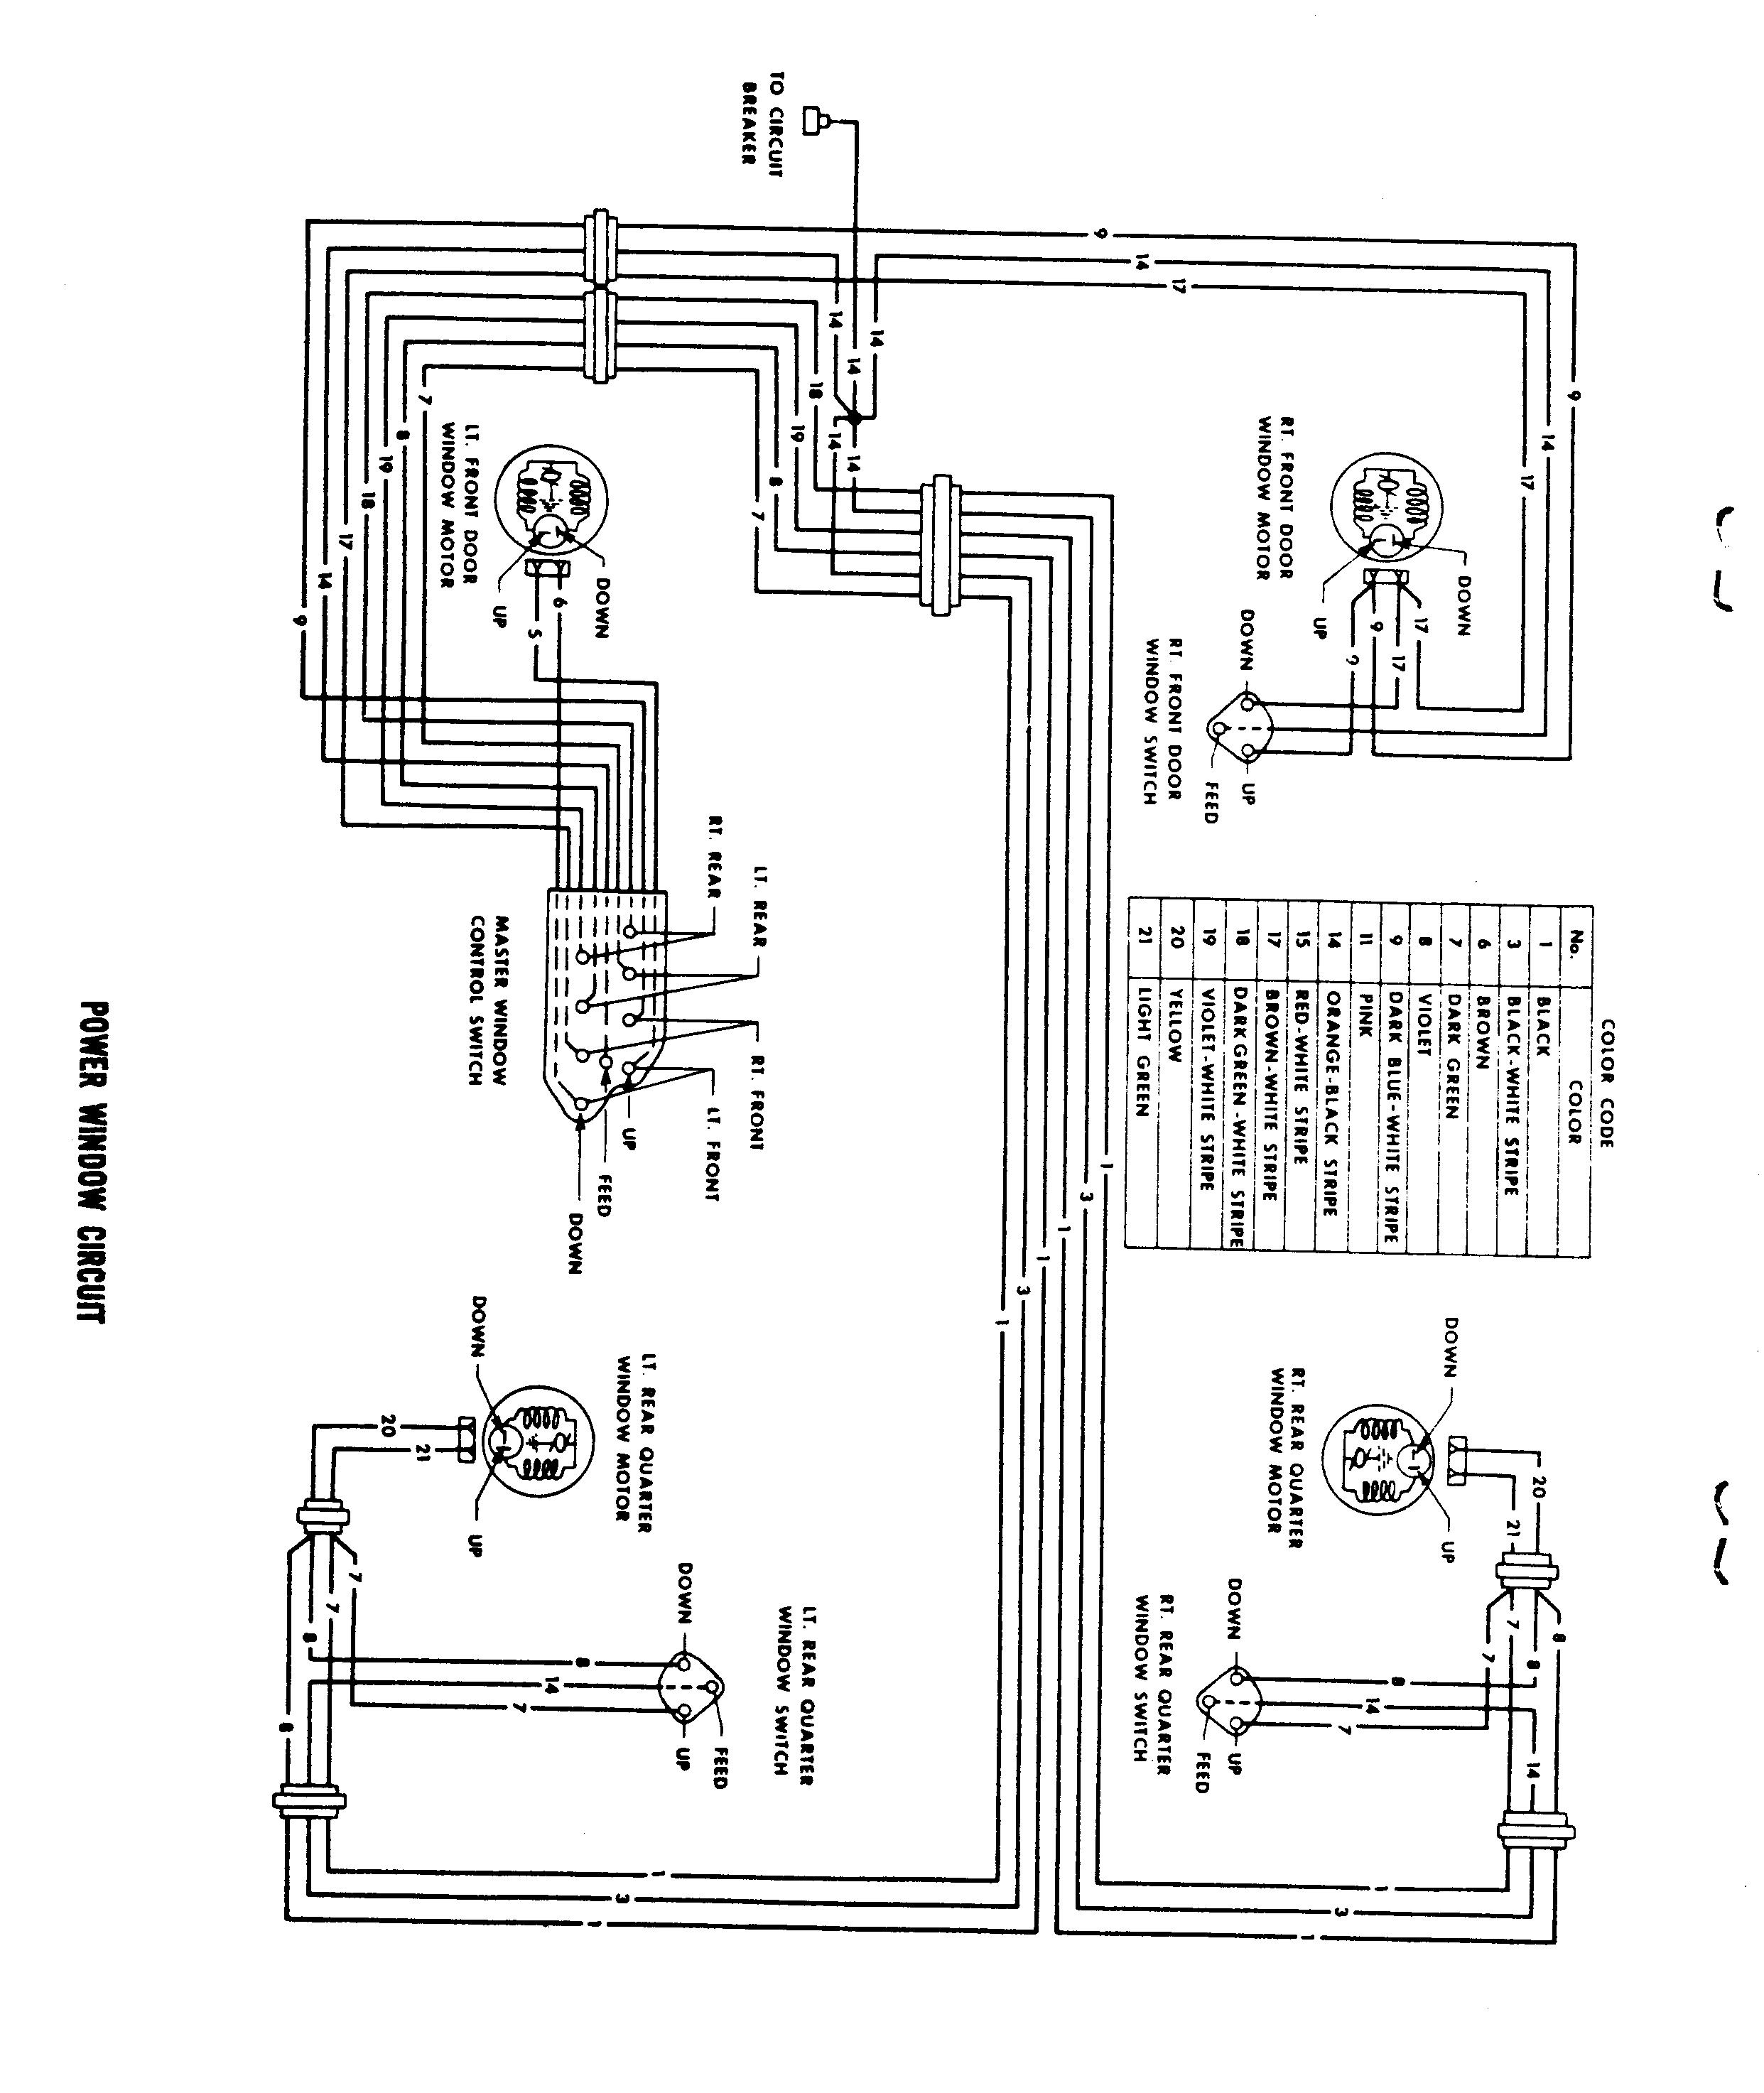 gto wiring diagram scans page 2 pontiac gto forum click image for larger version 68 wiring diagram page 5 jpeg views